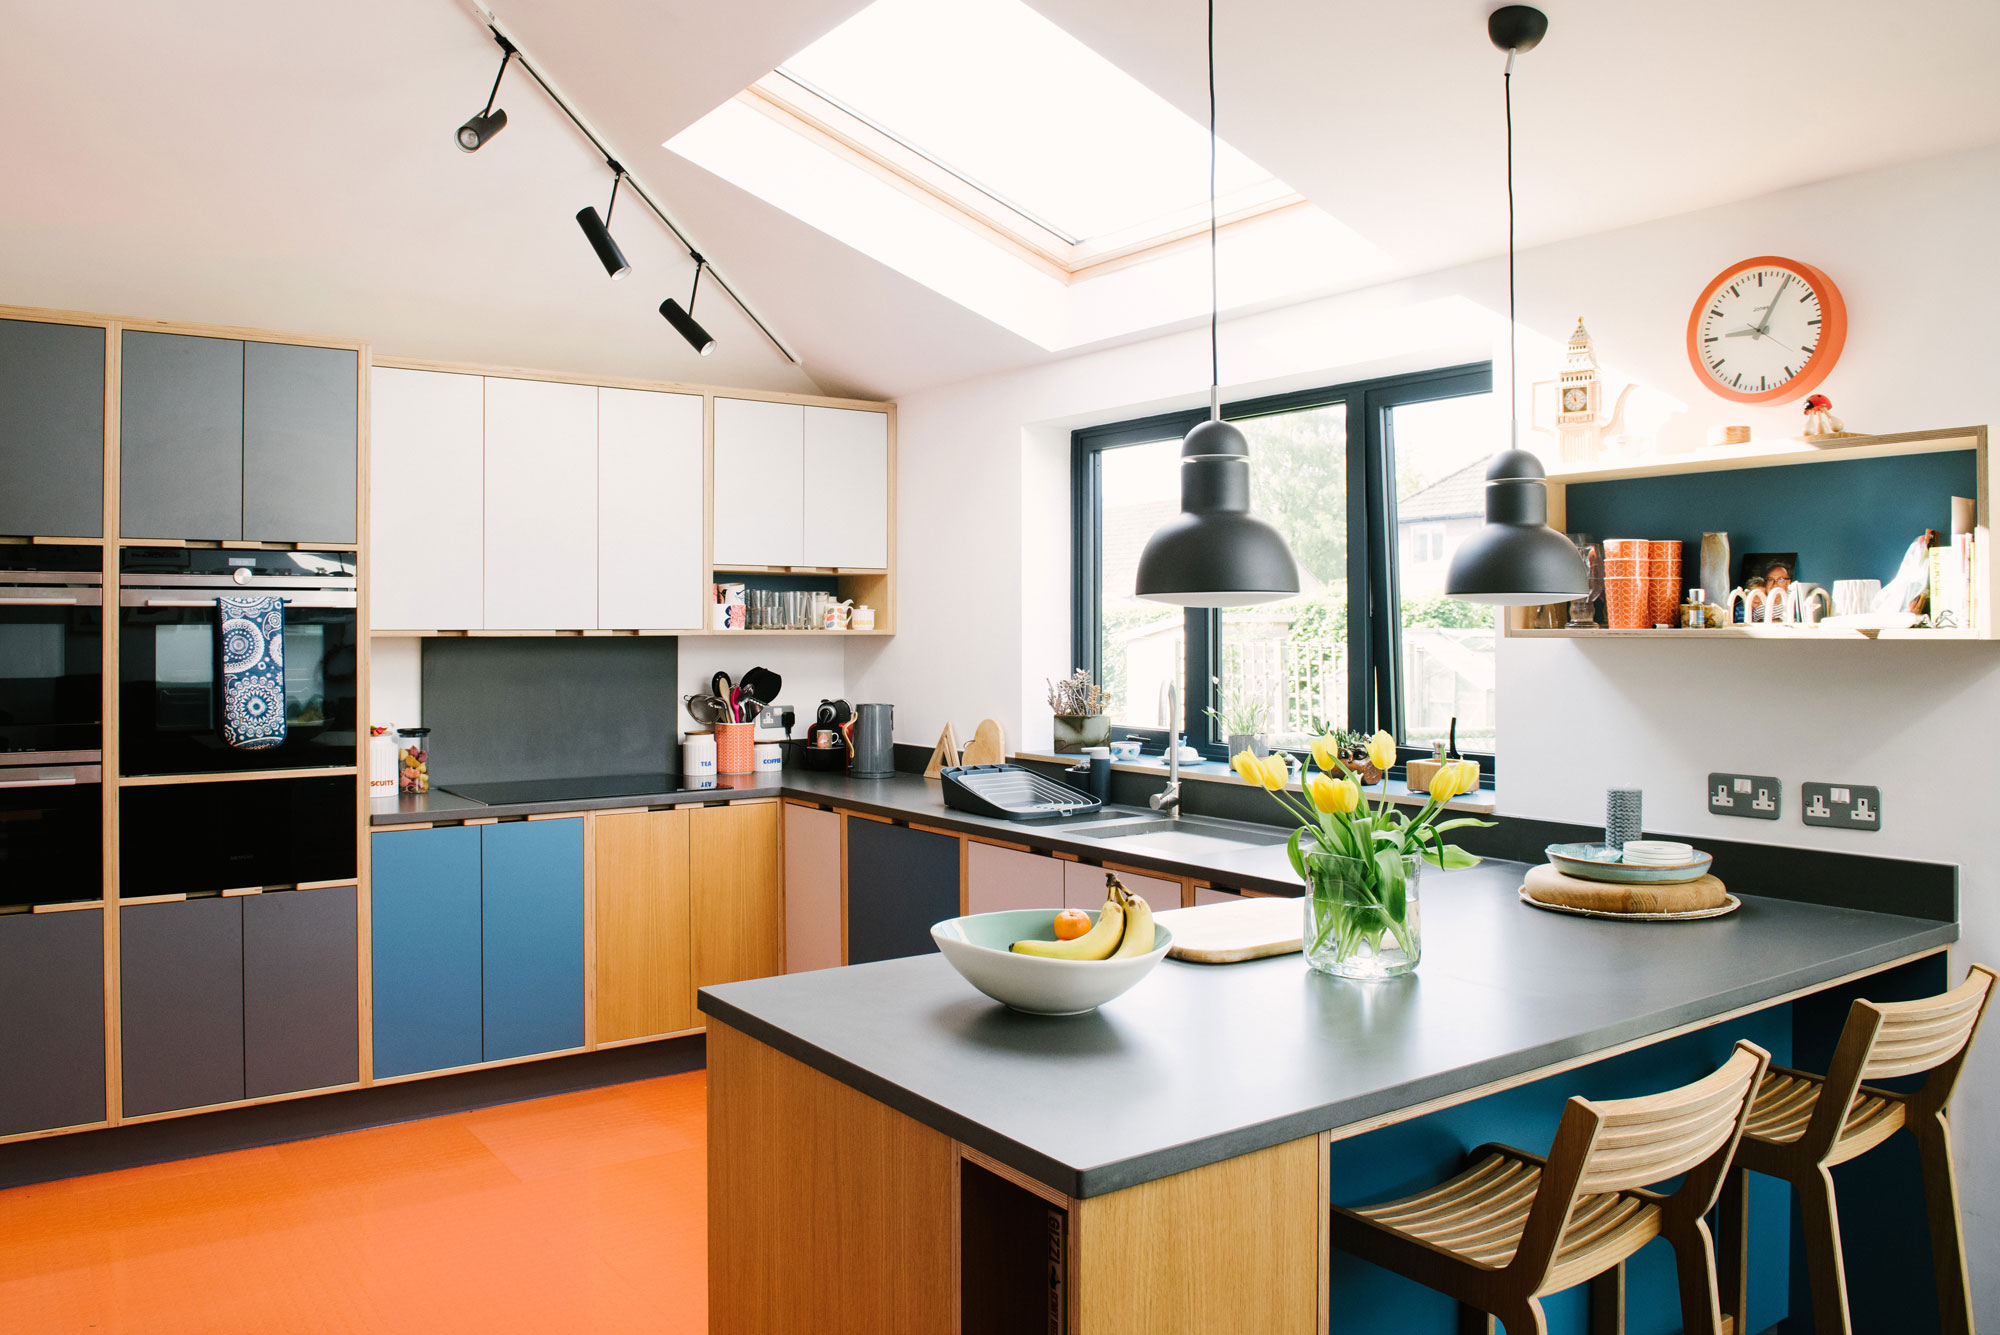 Plywood Kitchen With Orange Floor